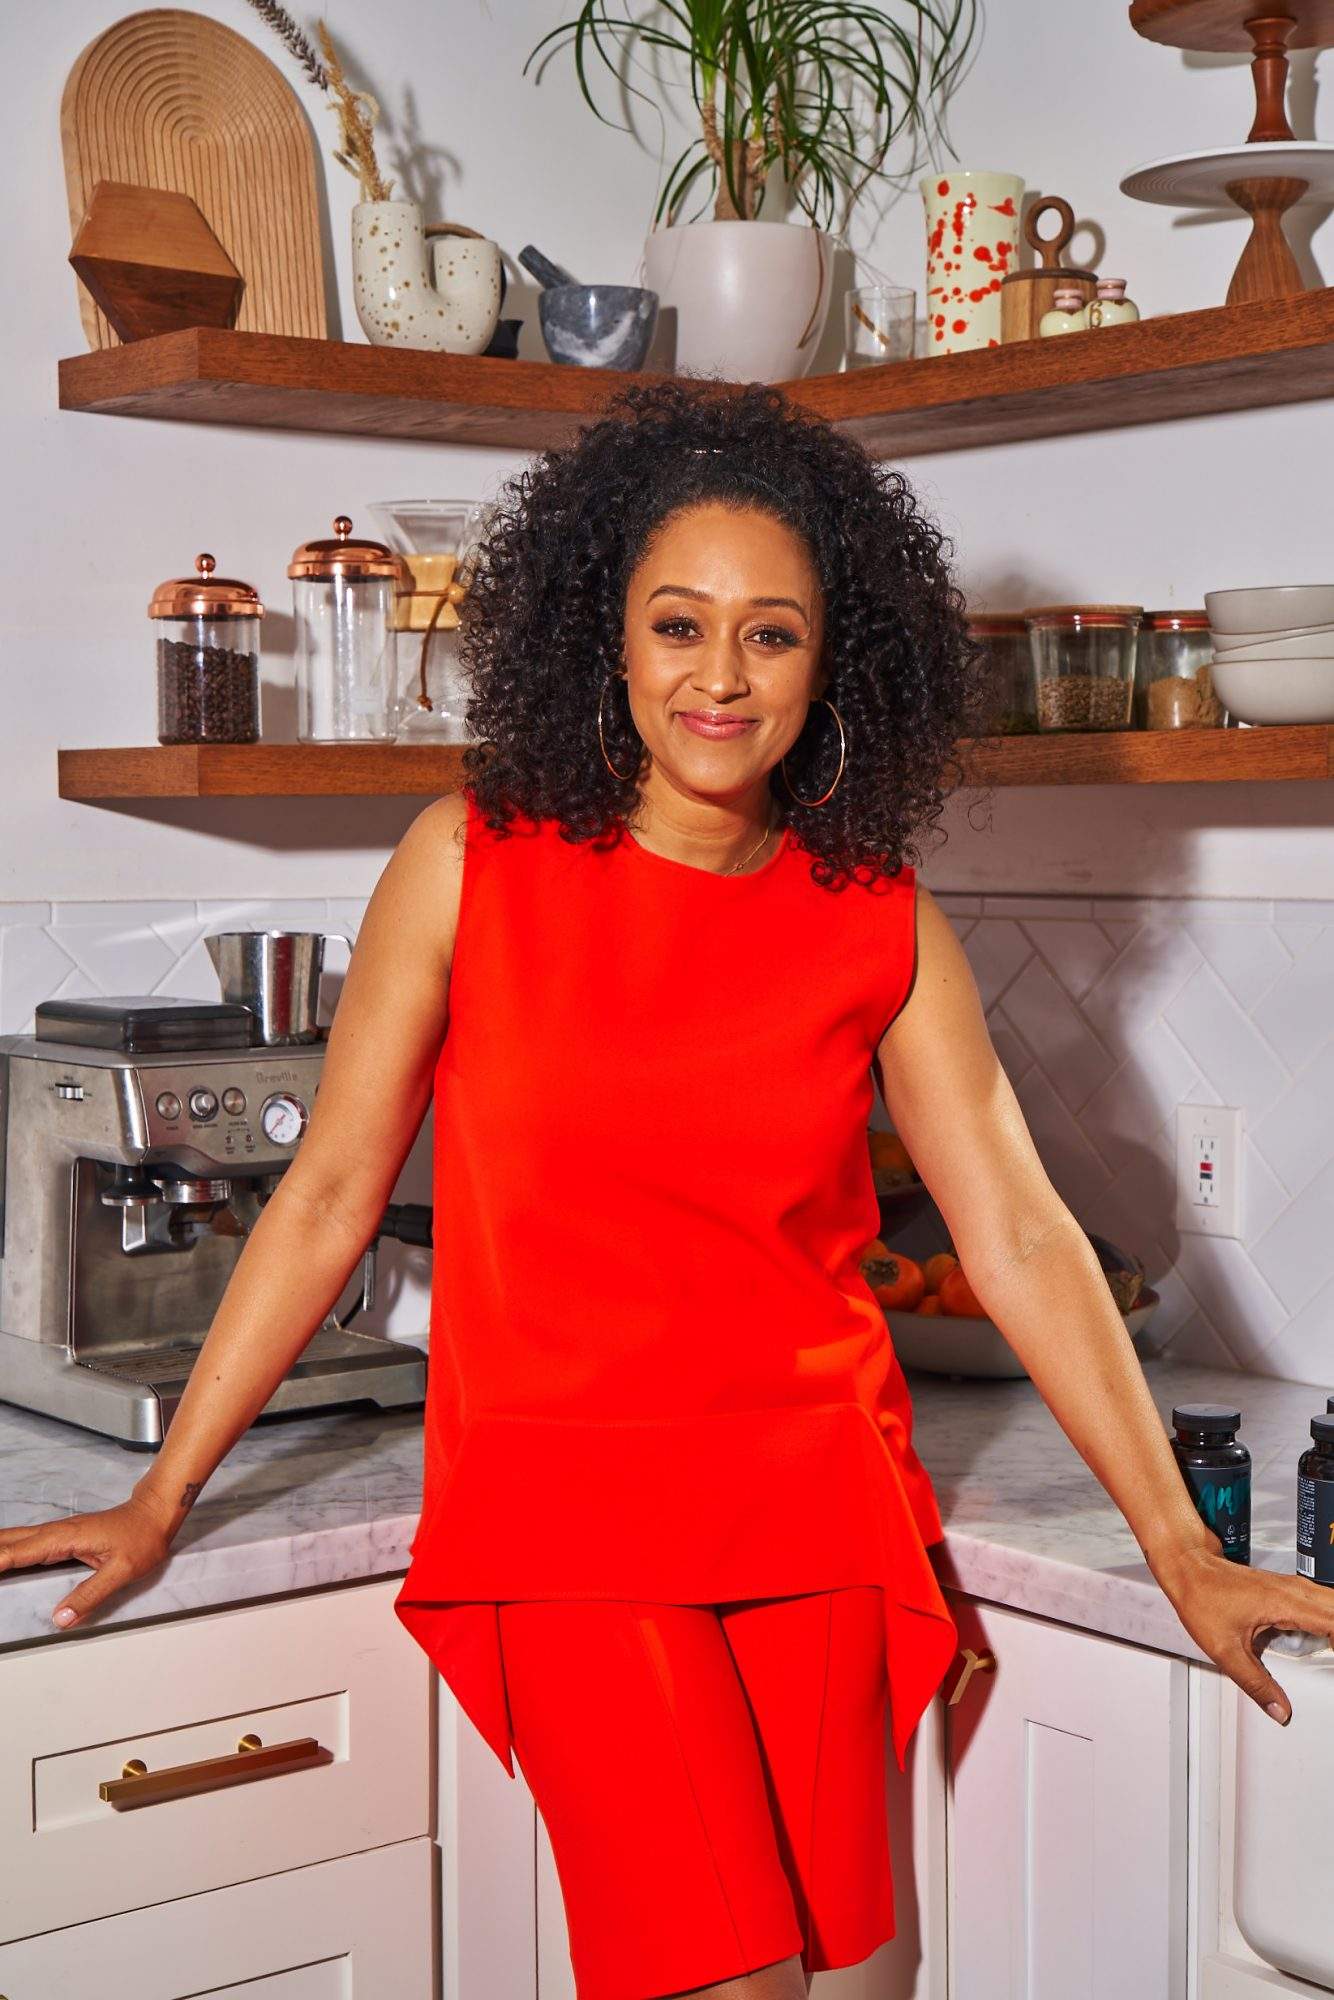 Tia Mowry standing in the kitchen